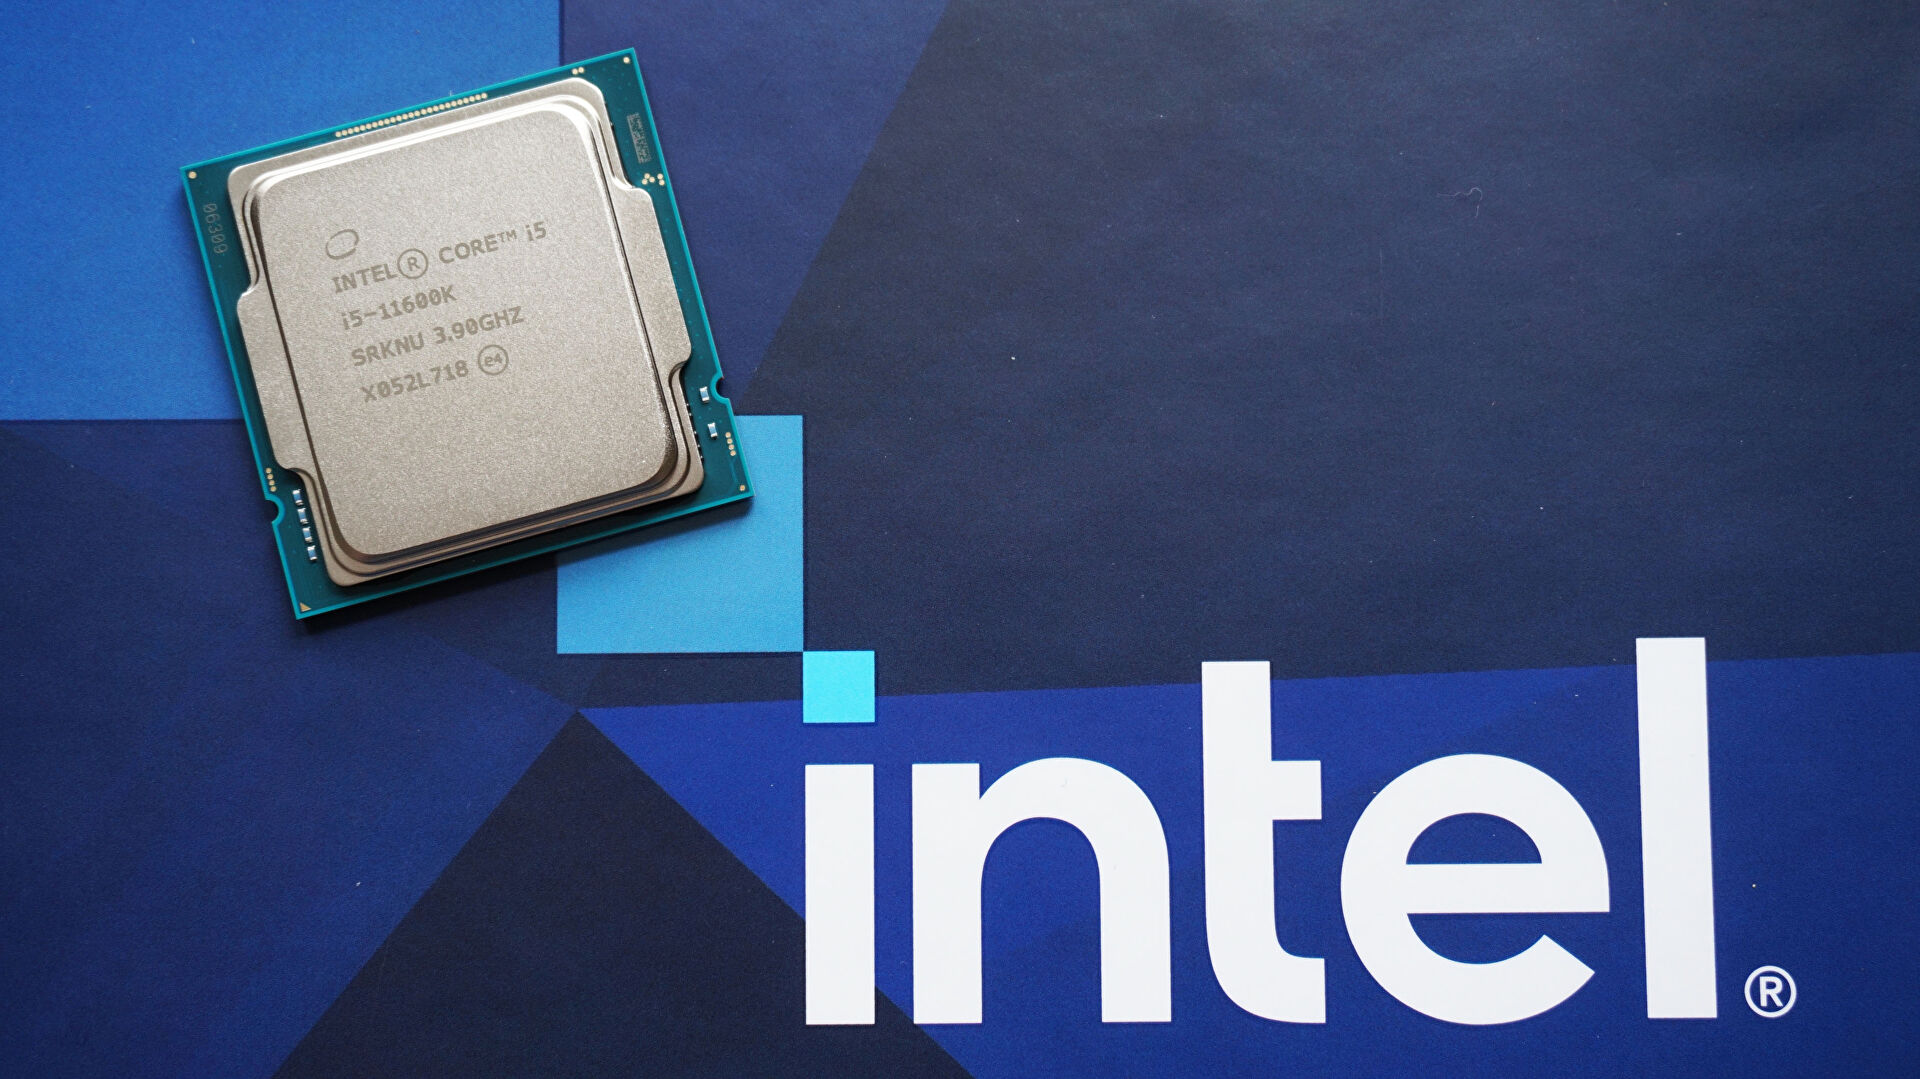 Intel's Core i5-11600K strikes back at AMD's Ryzen 5 5600X